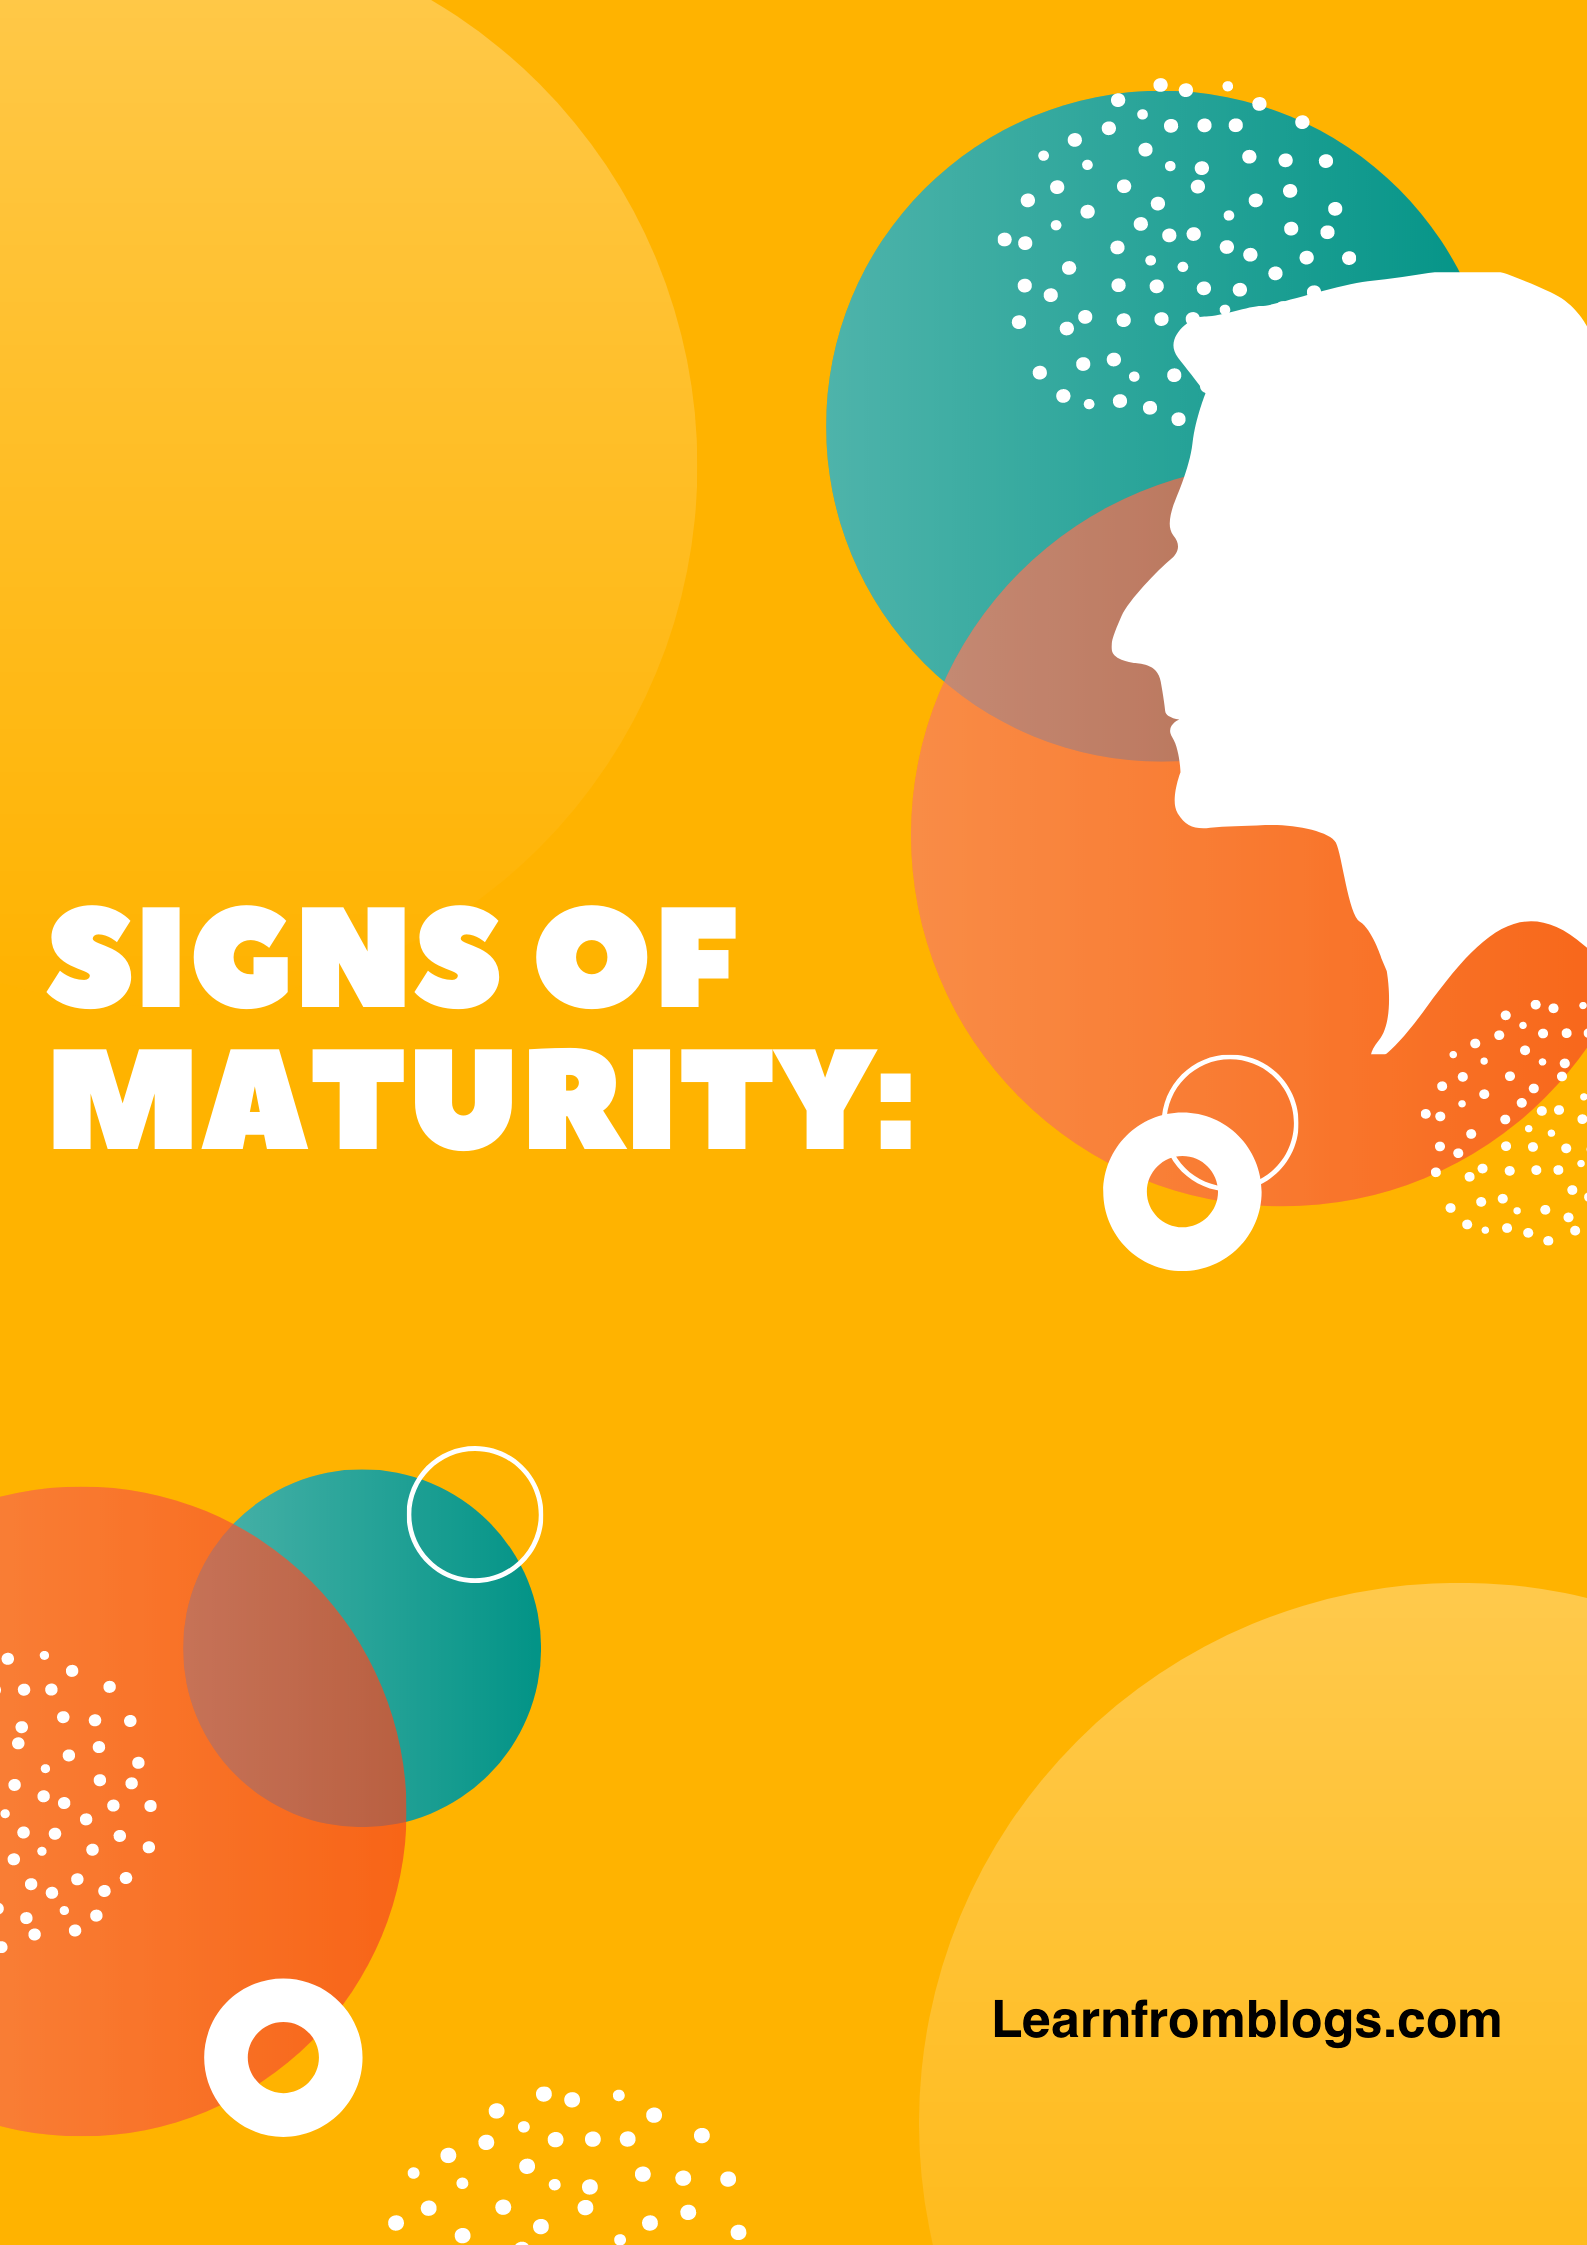 Signs of maturity.png